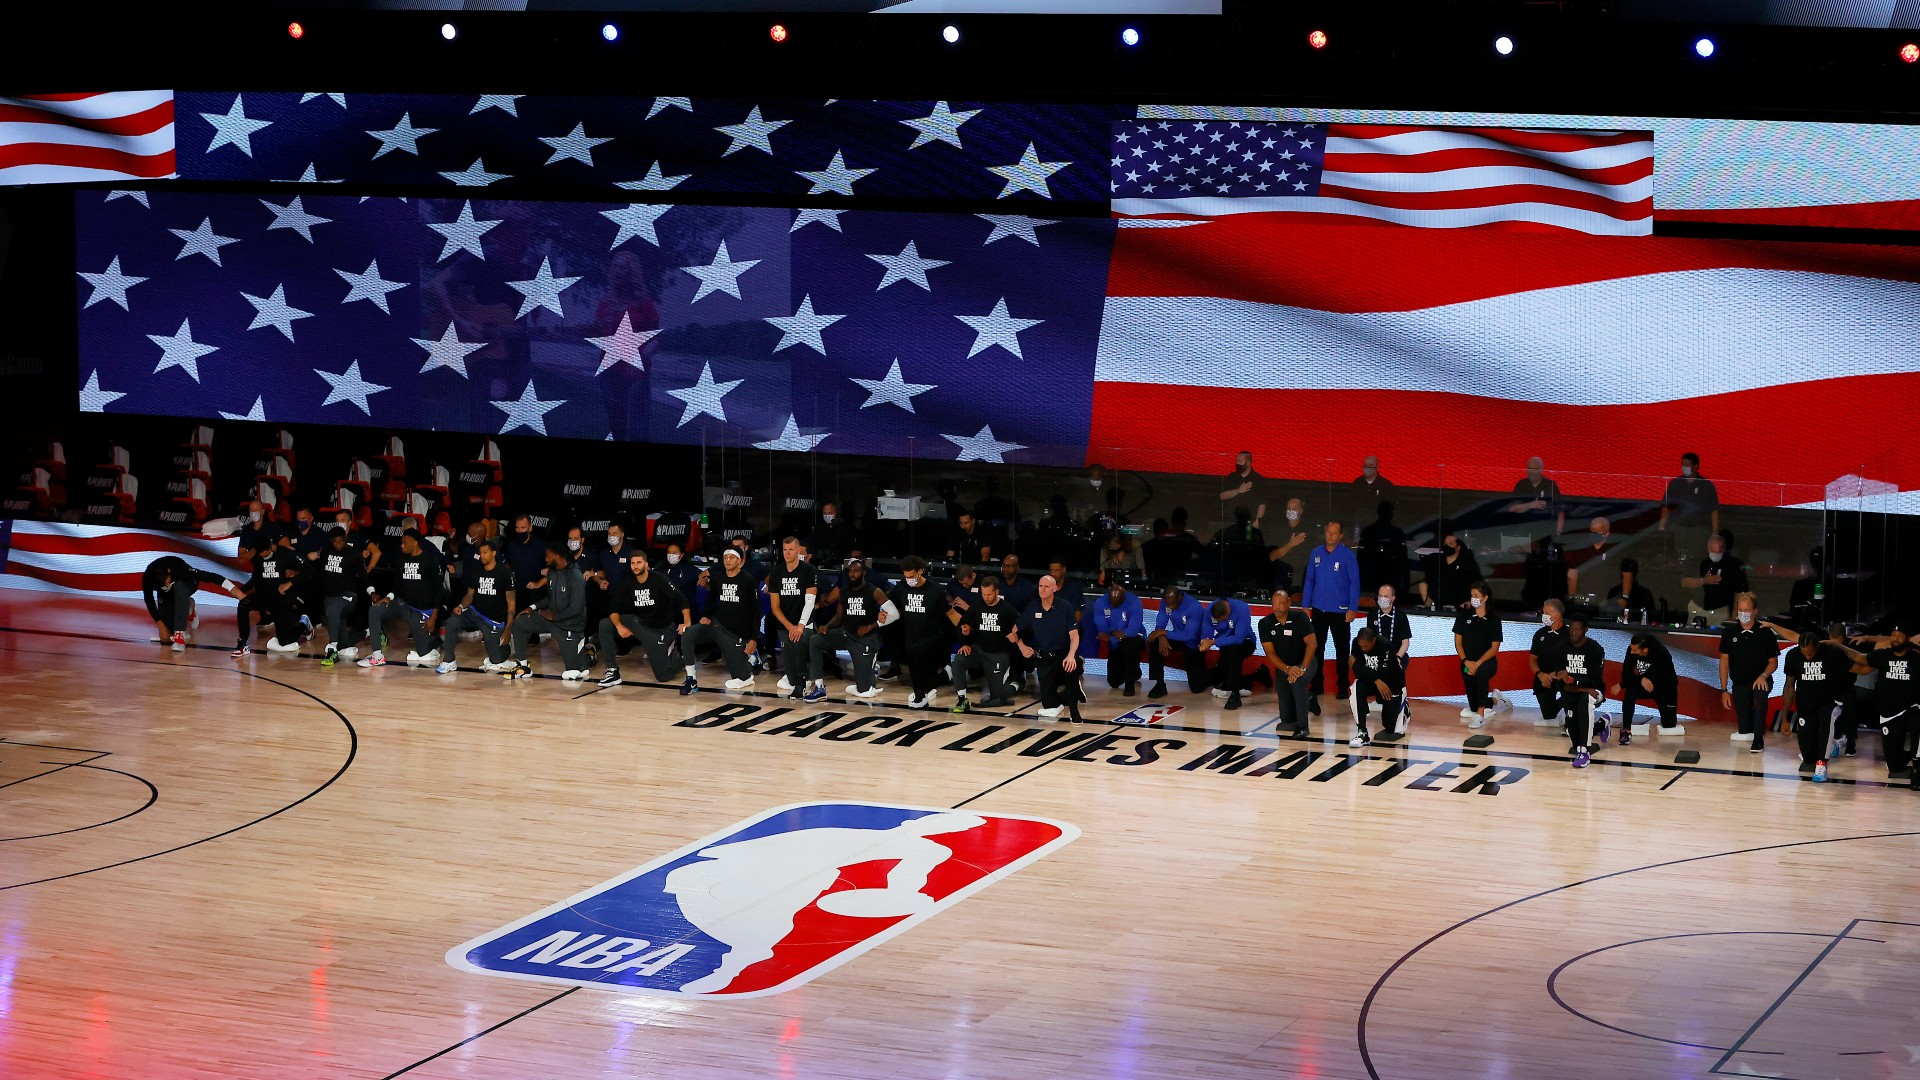 Mavericks have stopped playing national anthem before home games at Mark Cuban's request